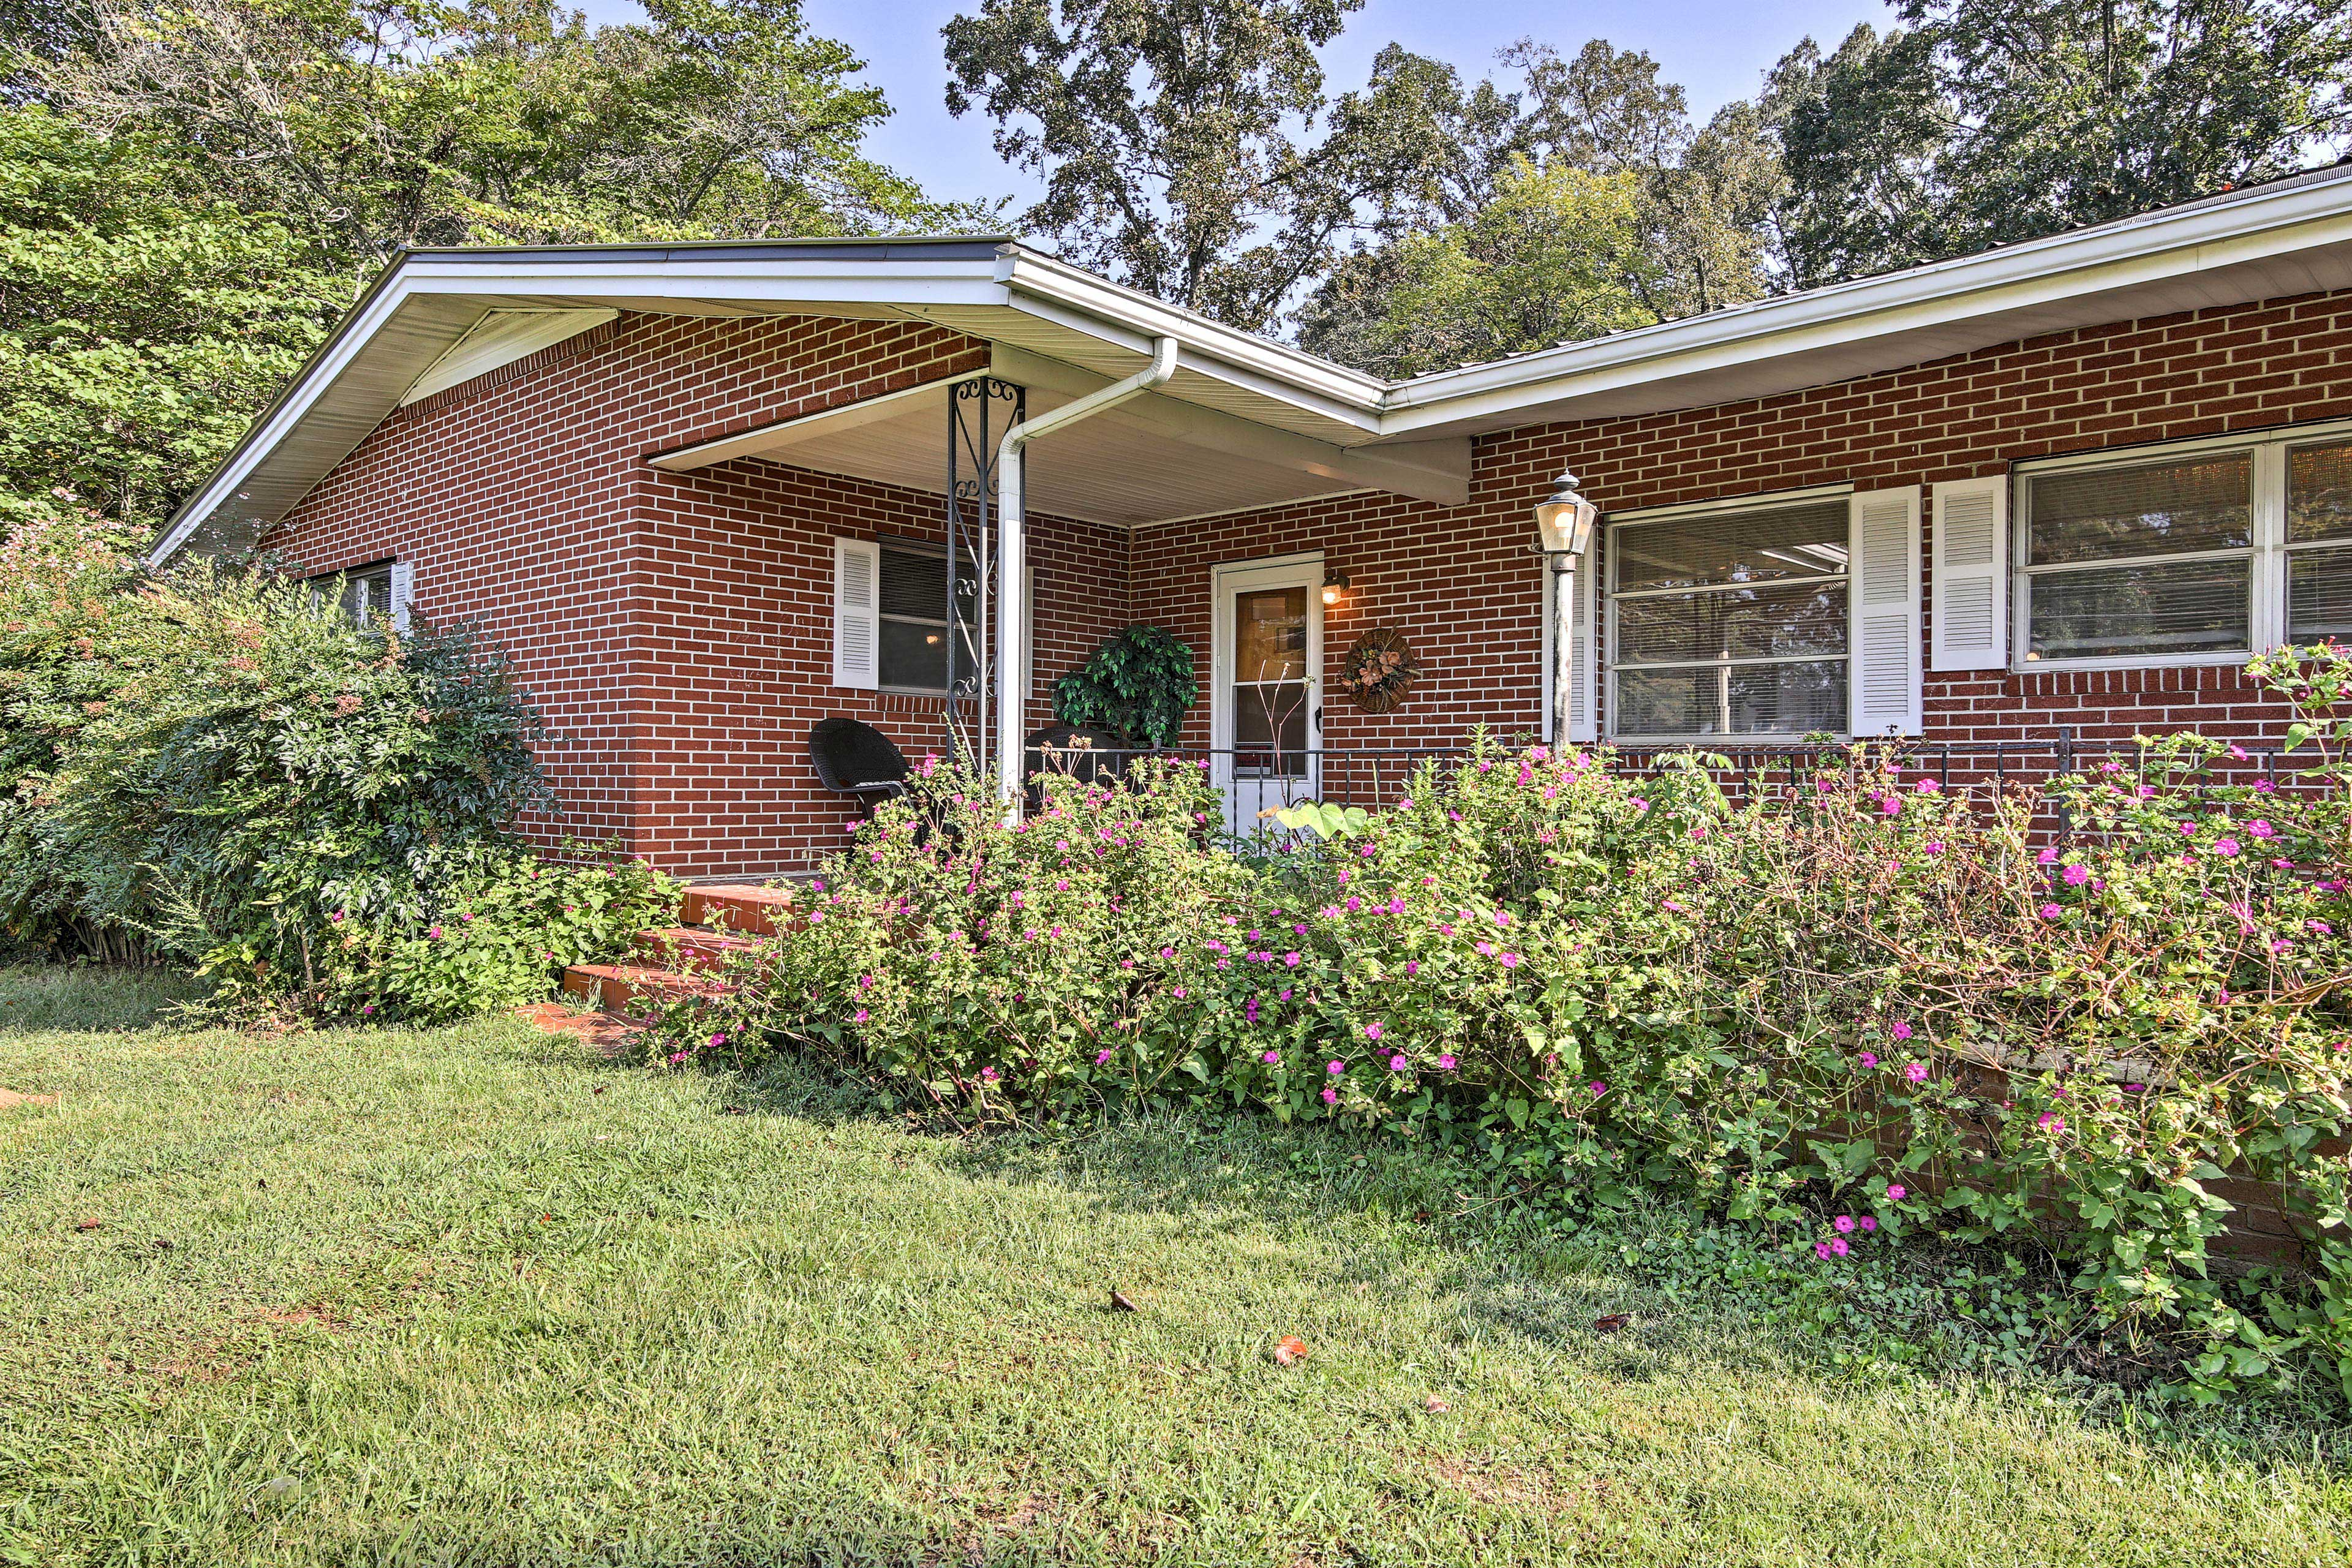 This charming home is just minutes away from shopping and dining in Blairsville.